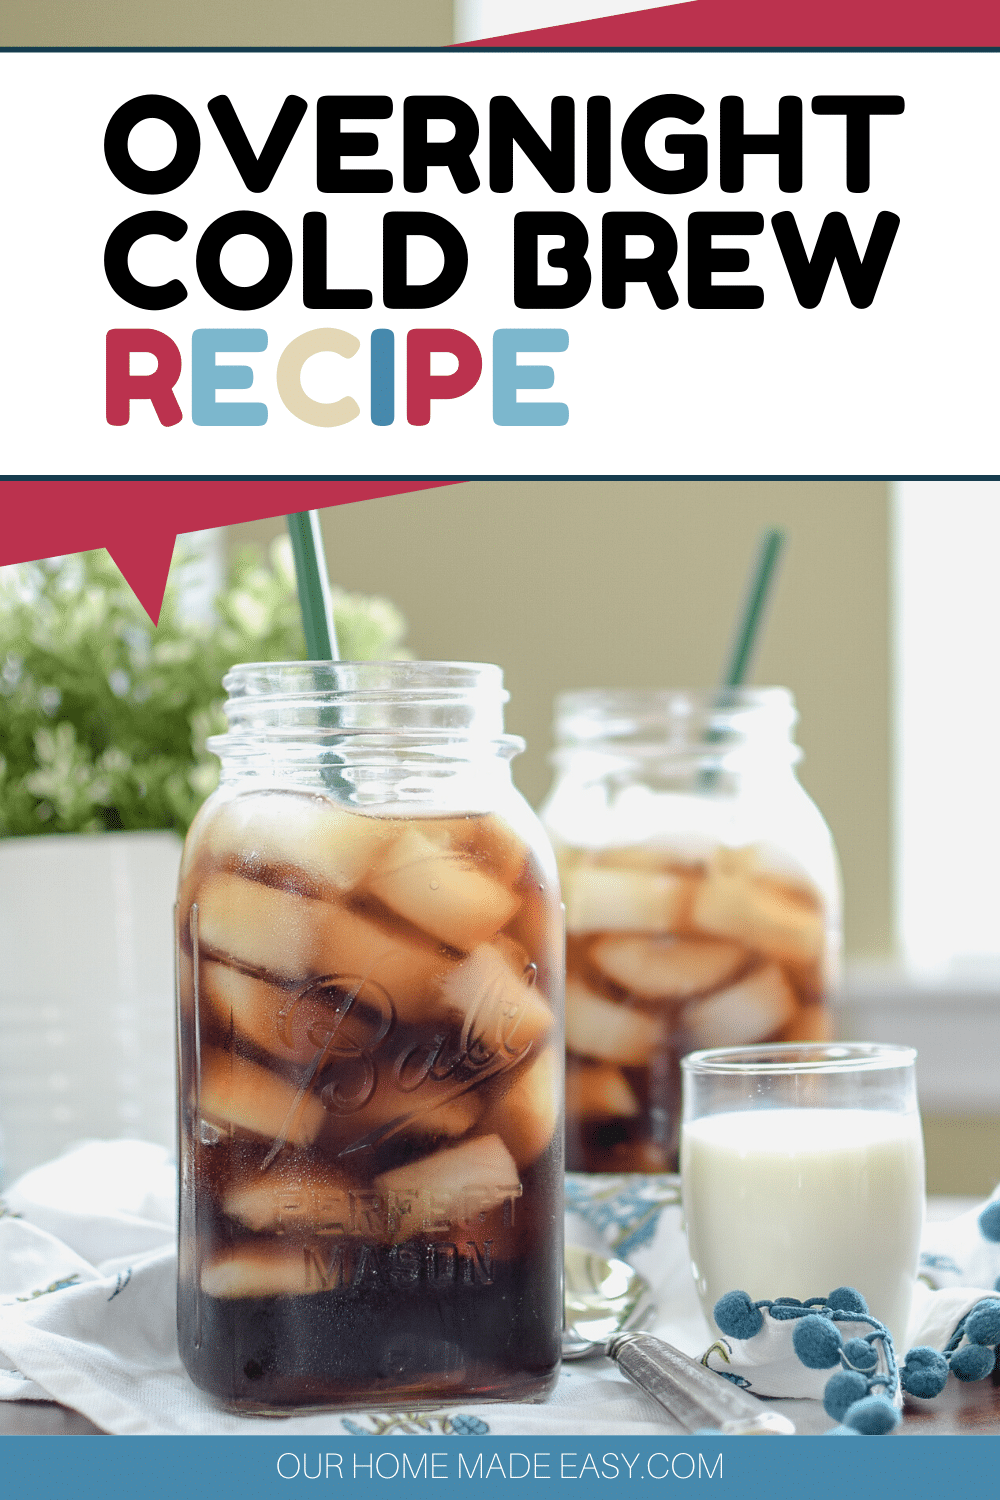 Make your own iced coffee at home with this overnight cold brew coffee recipe!